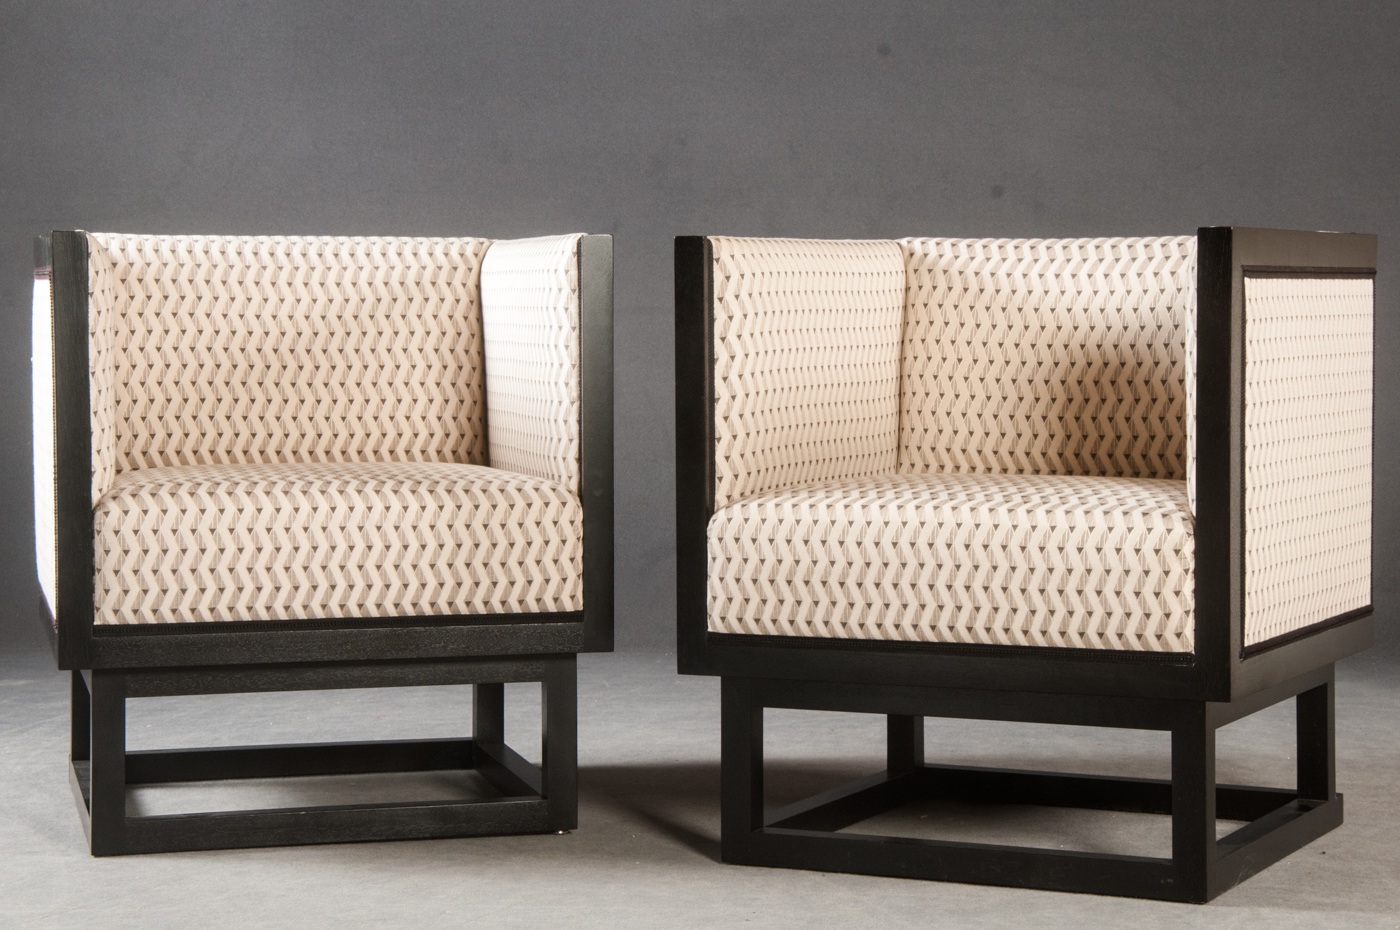 Rundsessel Rattan Josef Hoffmann Valuations Browse Auction Results Mearto